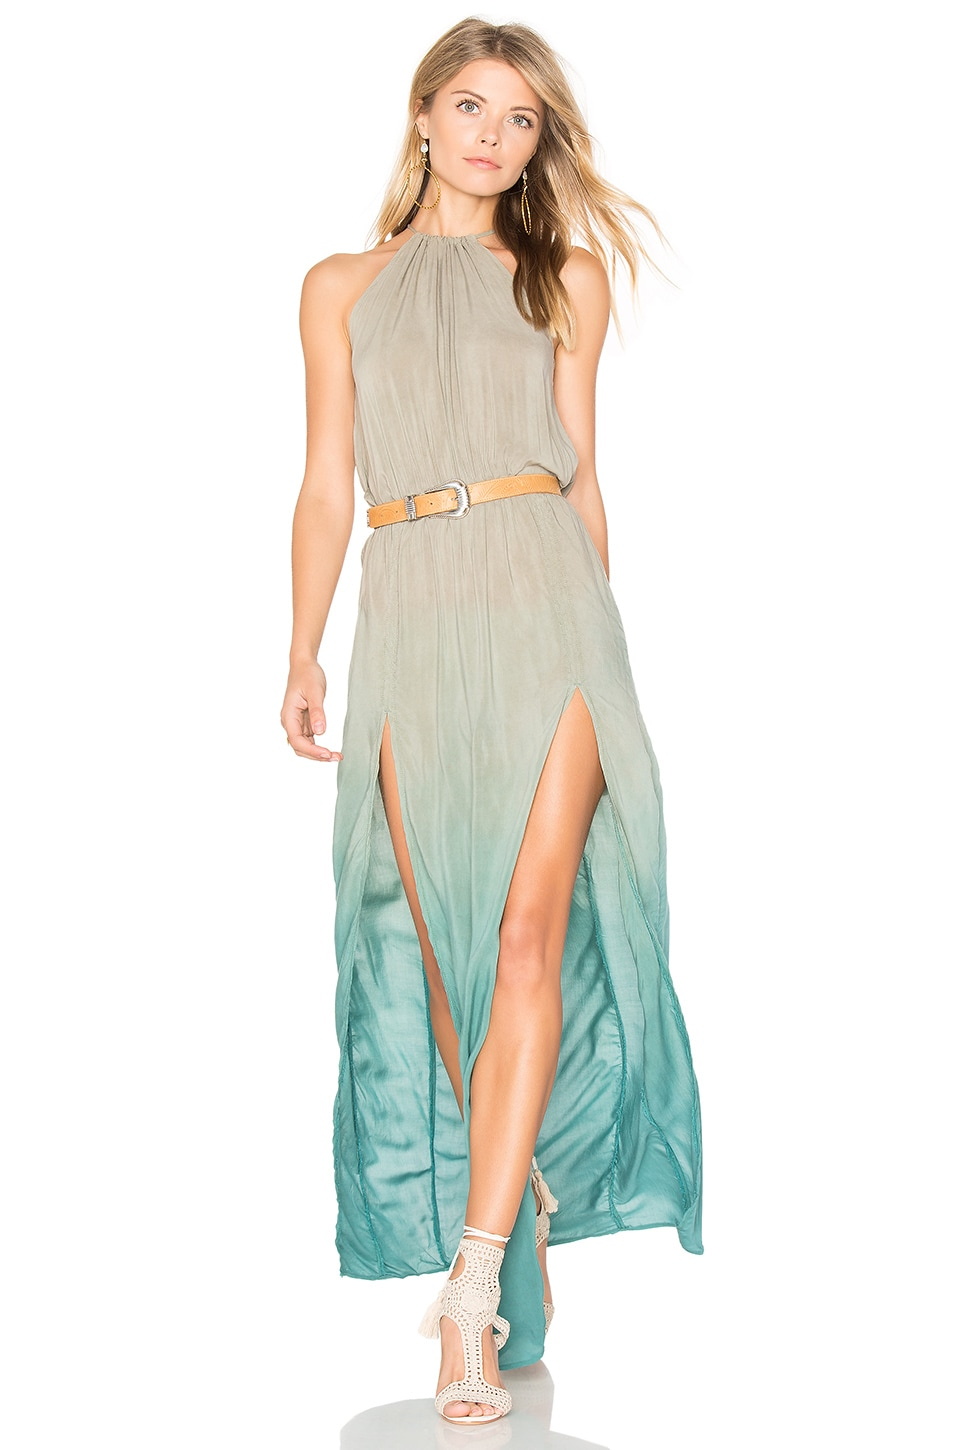 Slit Halter Dress by Blue Life